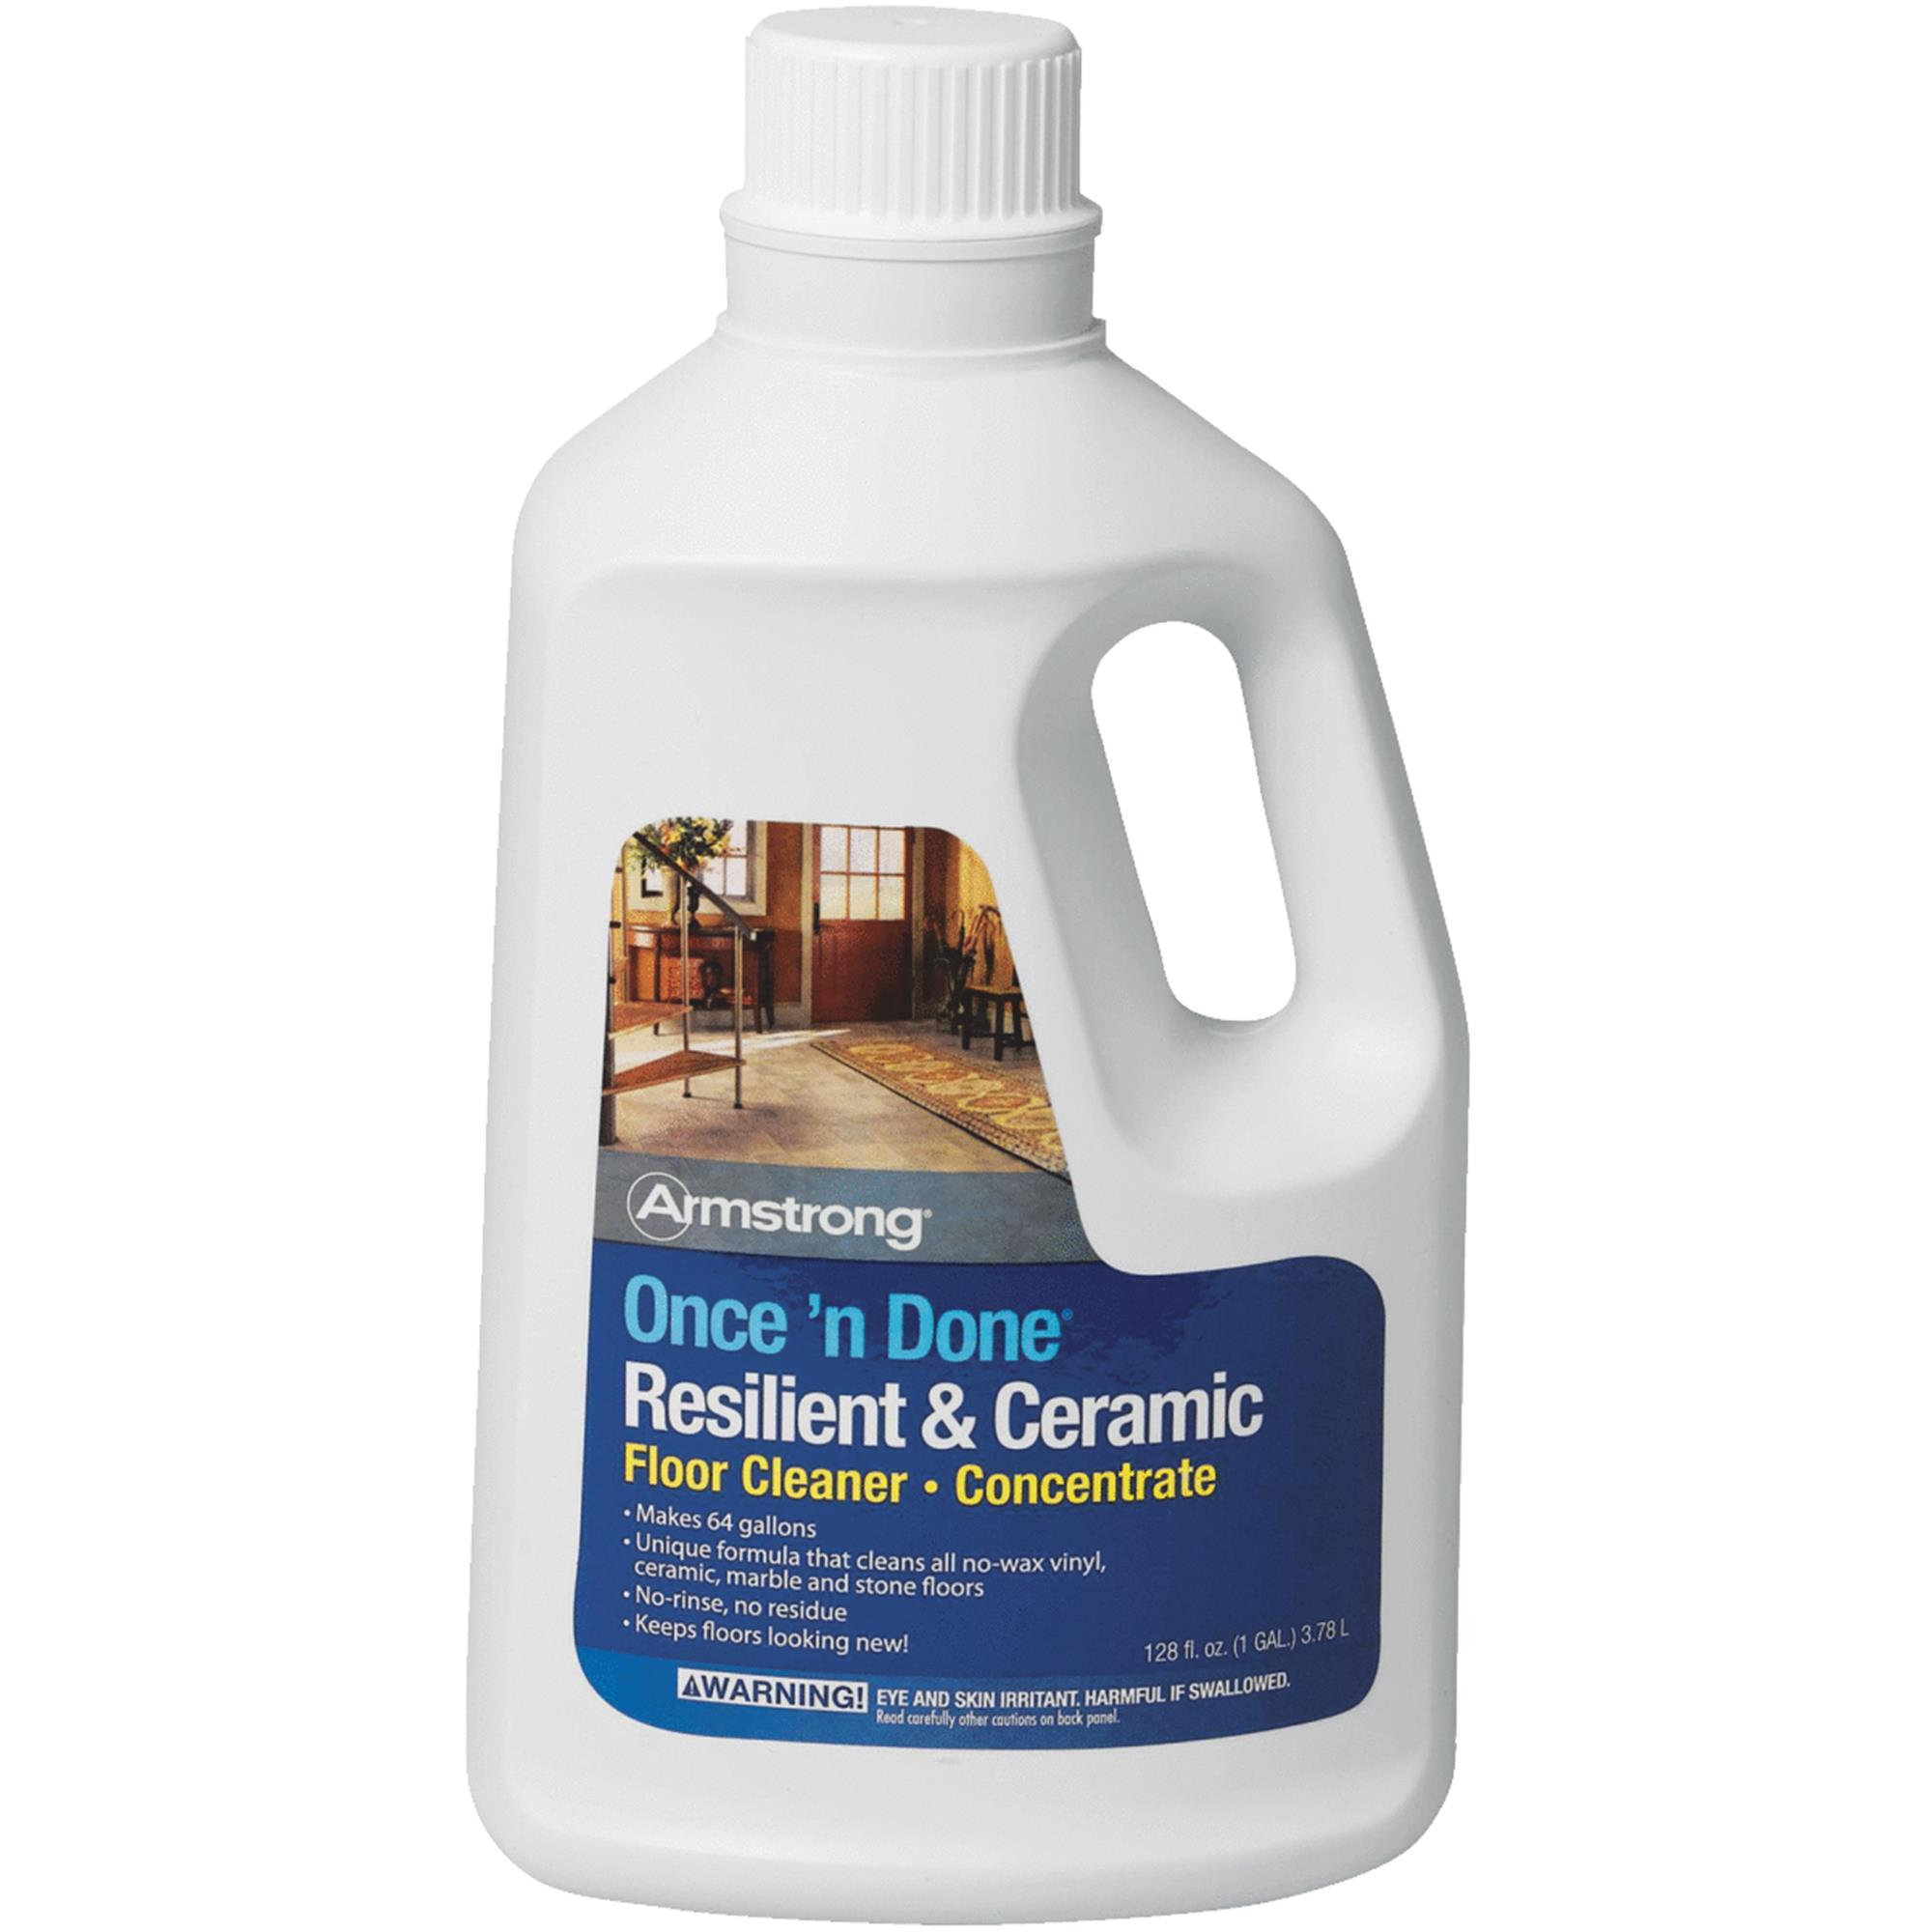 Armstrong ceramic tile floor cleaner tile designs armstrong once n done resilient ceramic floor cleaner dailygadgetfo Choice Image